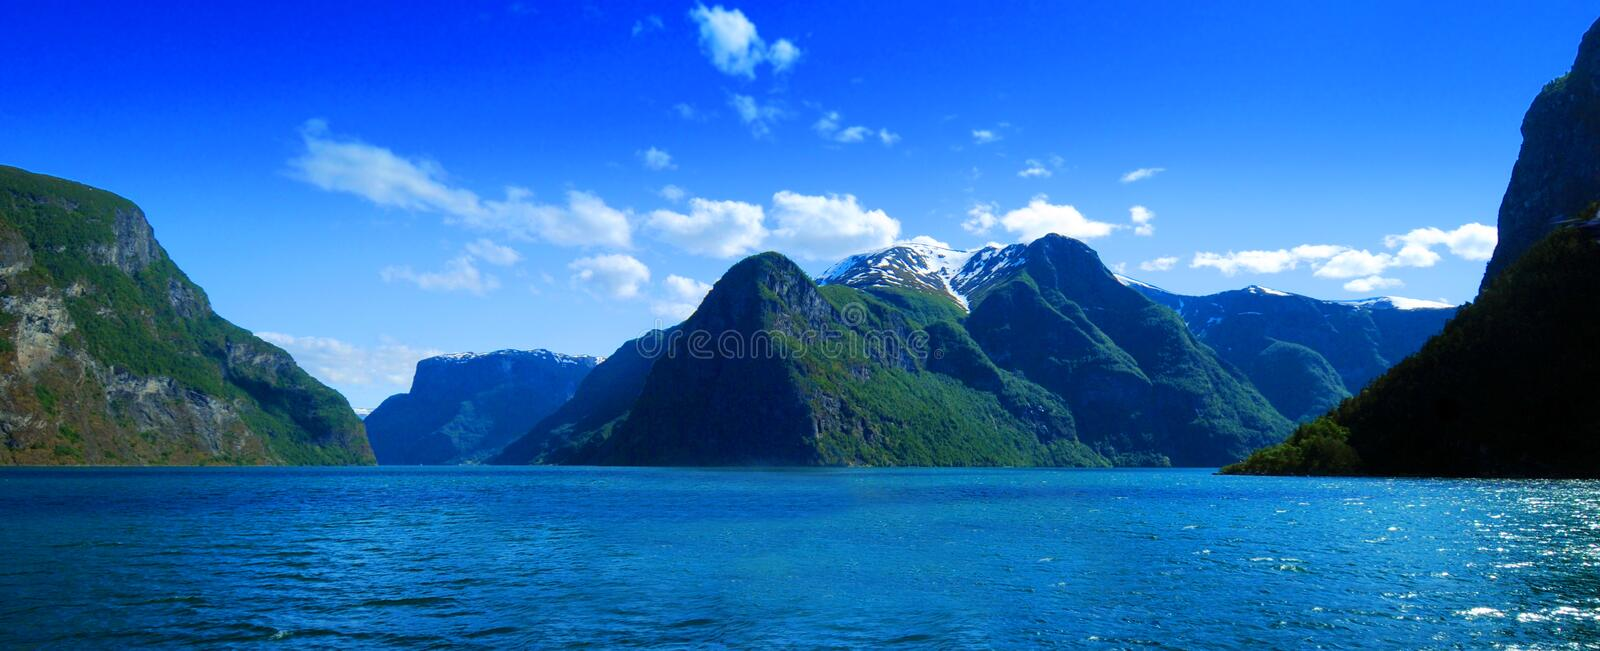 fjords norway